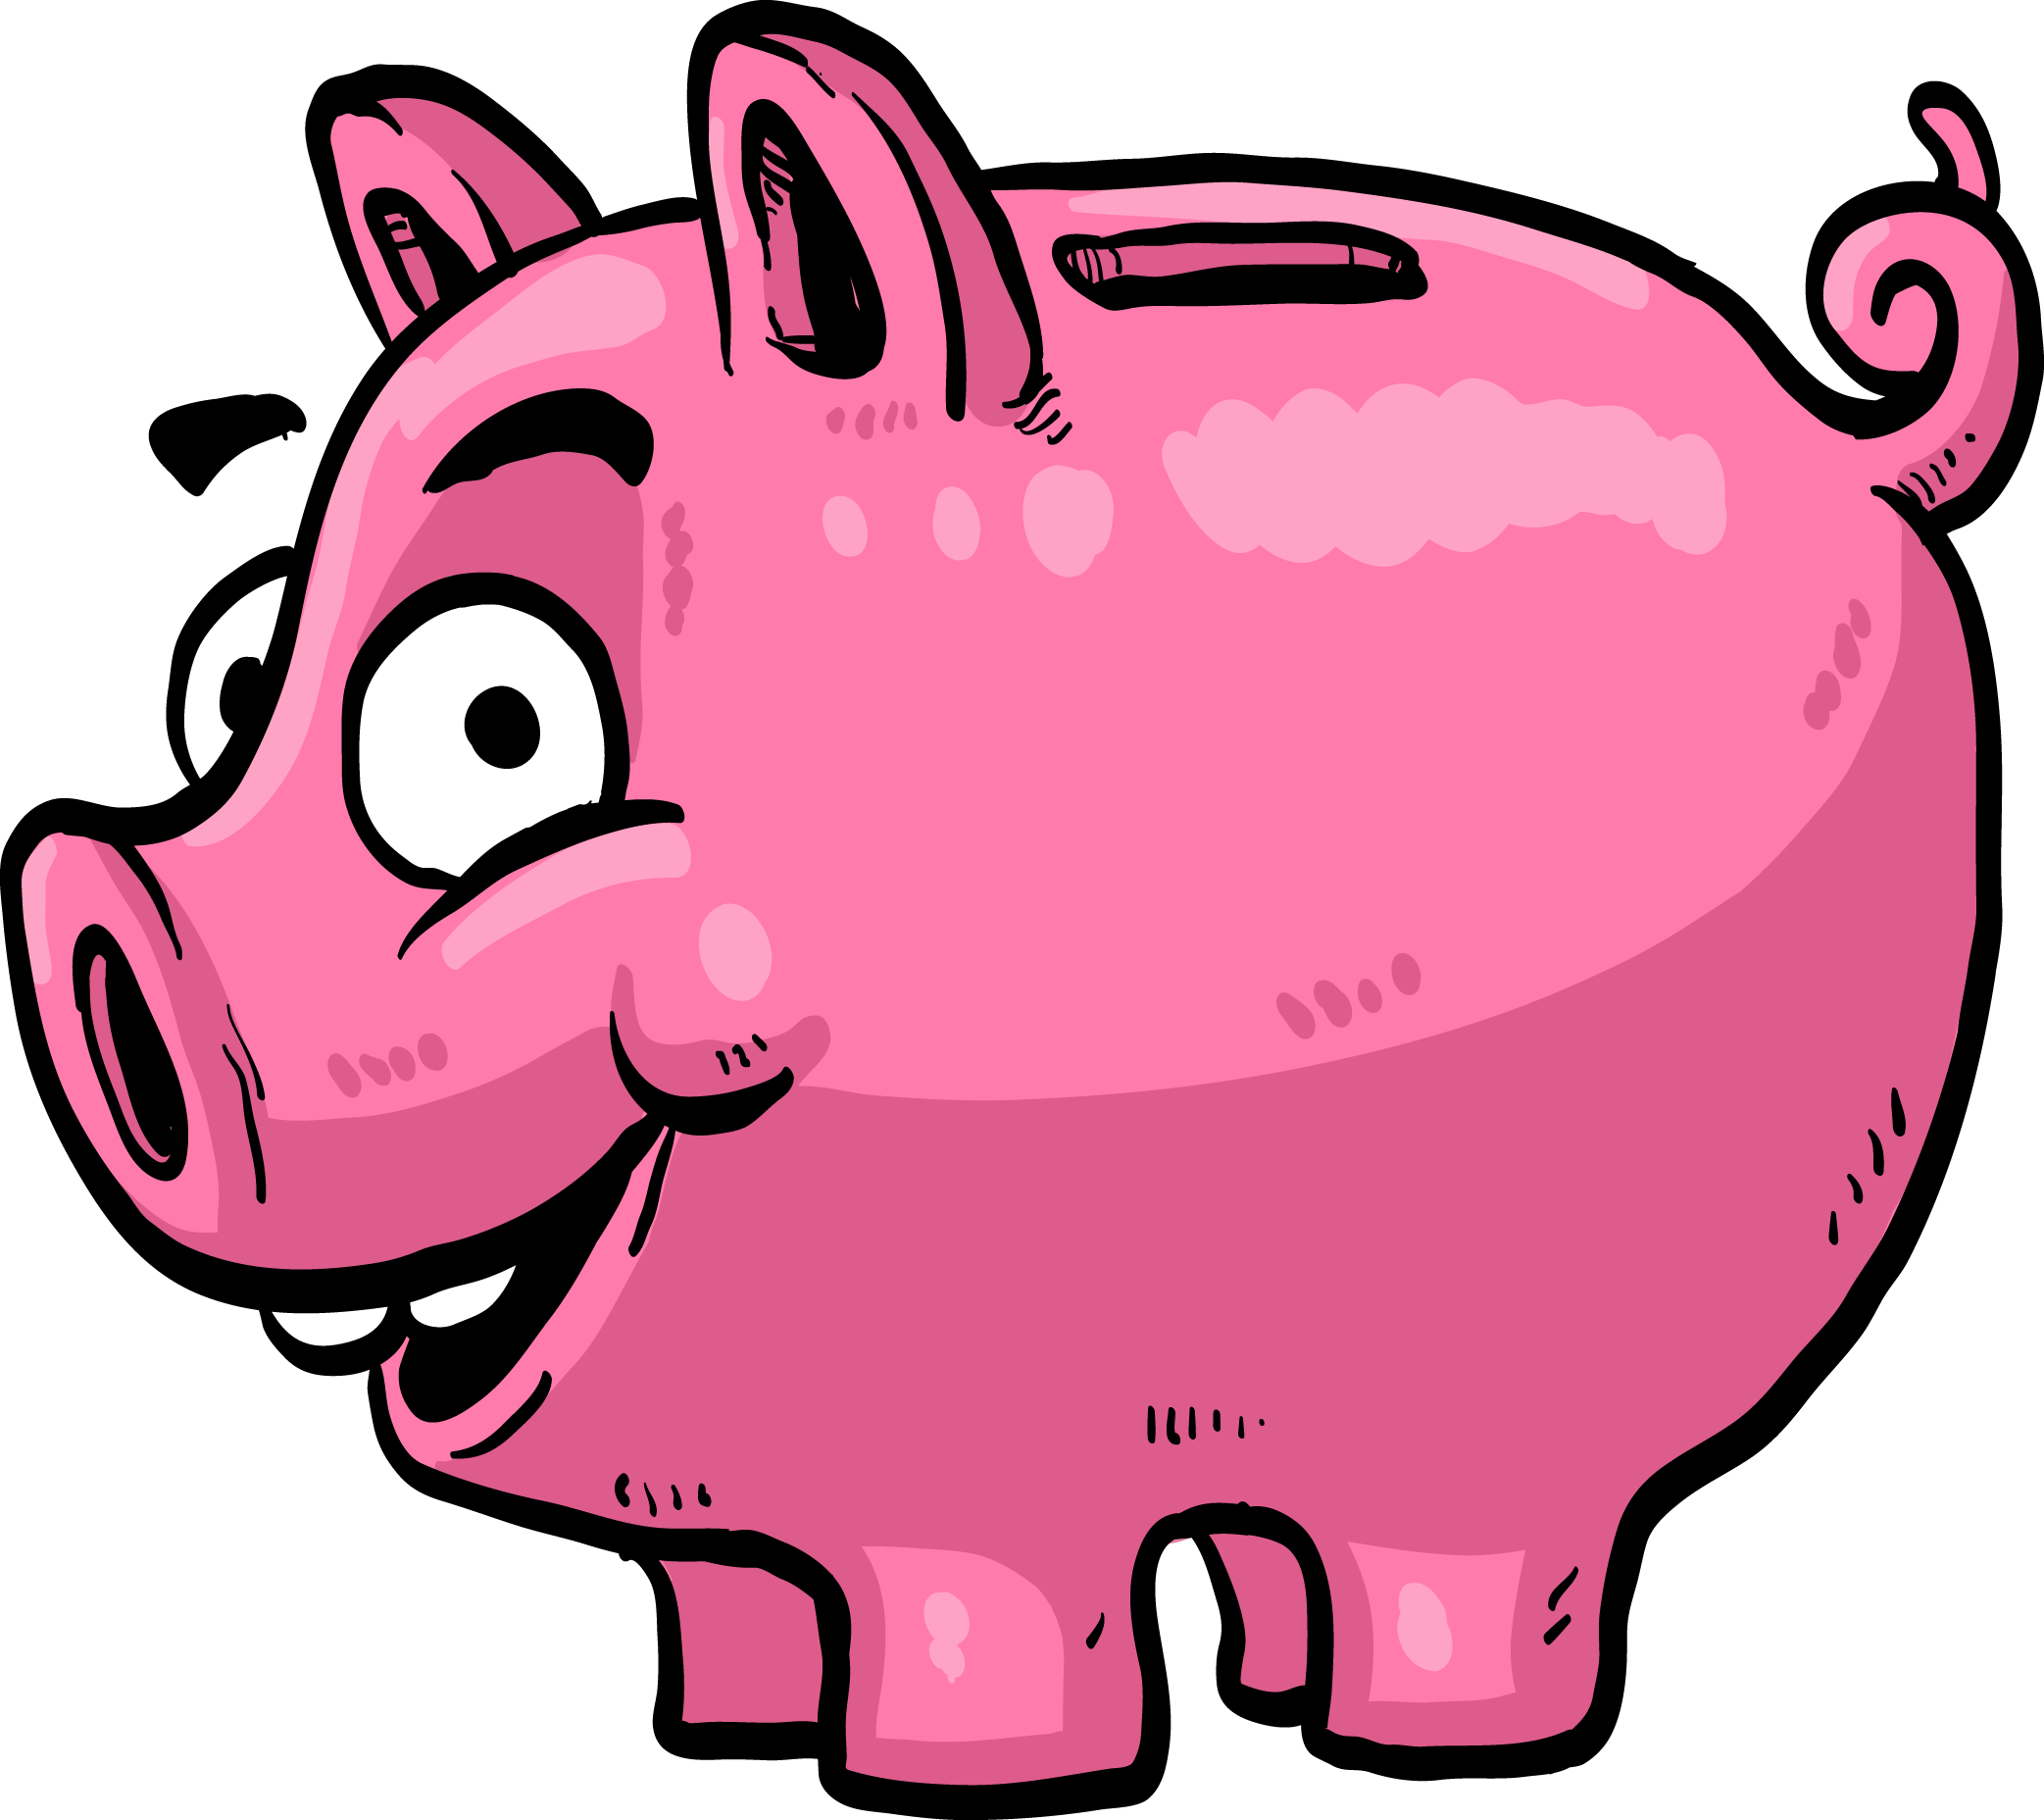 Cartoon piggy bank clipart jpg free Money Saving Piggy bank Clip art - Piggy bank 2085*1856 transprent ... jpg free